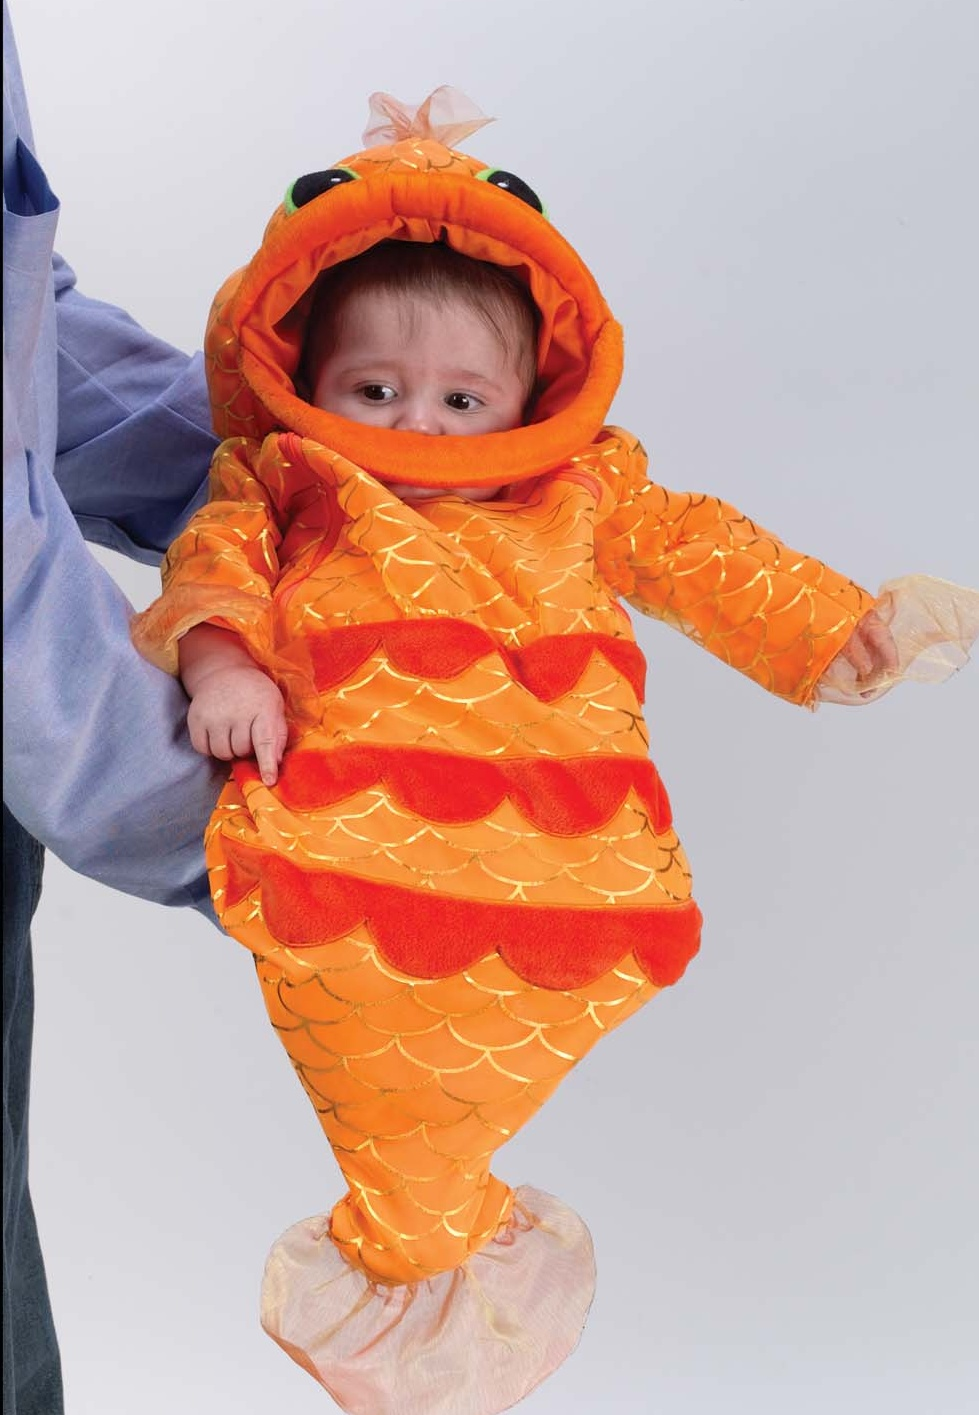 Baby Fish Bunting Costume - Animal Costumes - 15fw8663